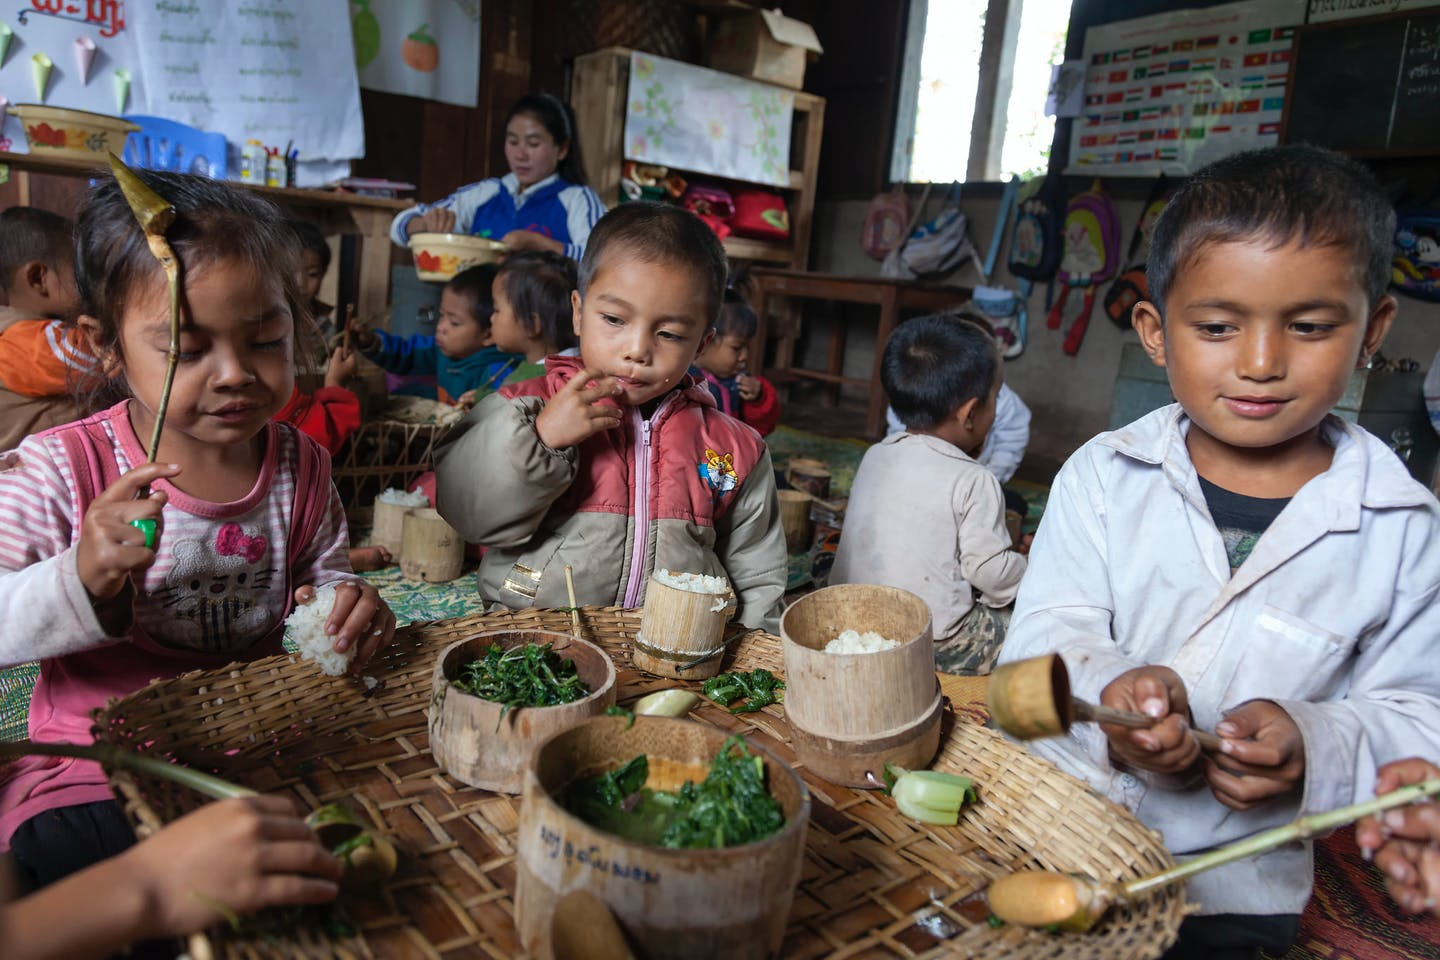 Children in Laos eating traditional foods